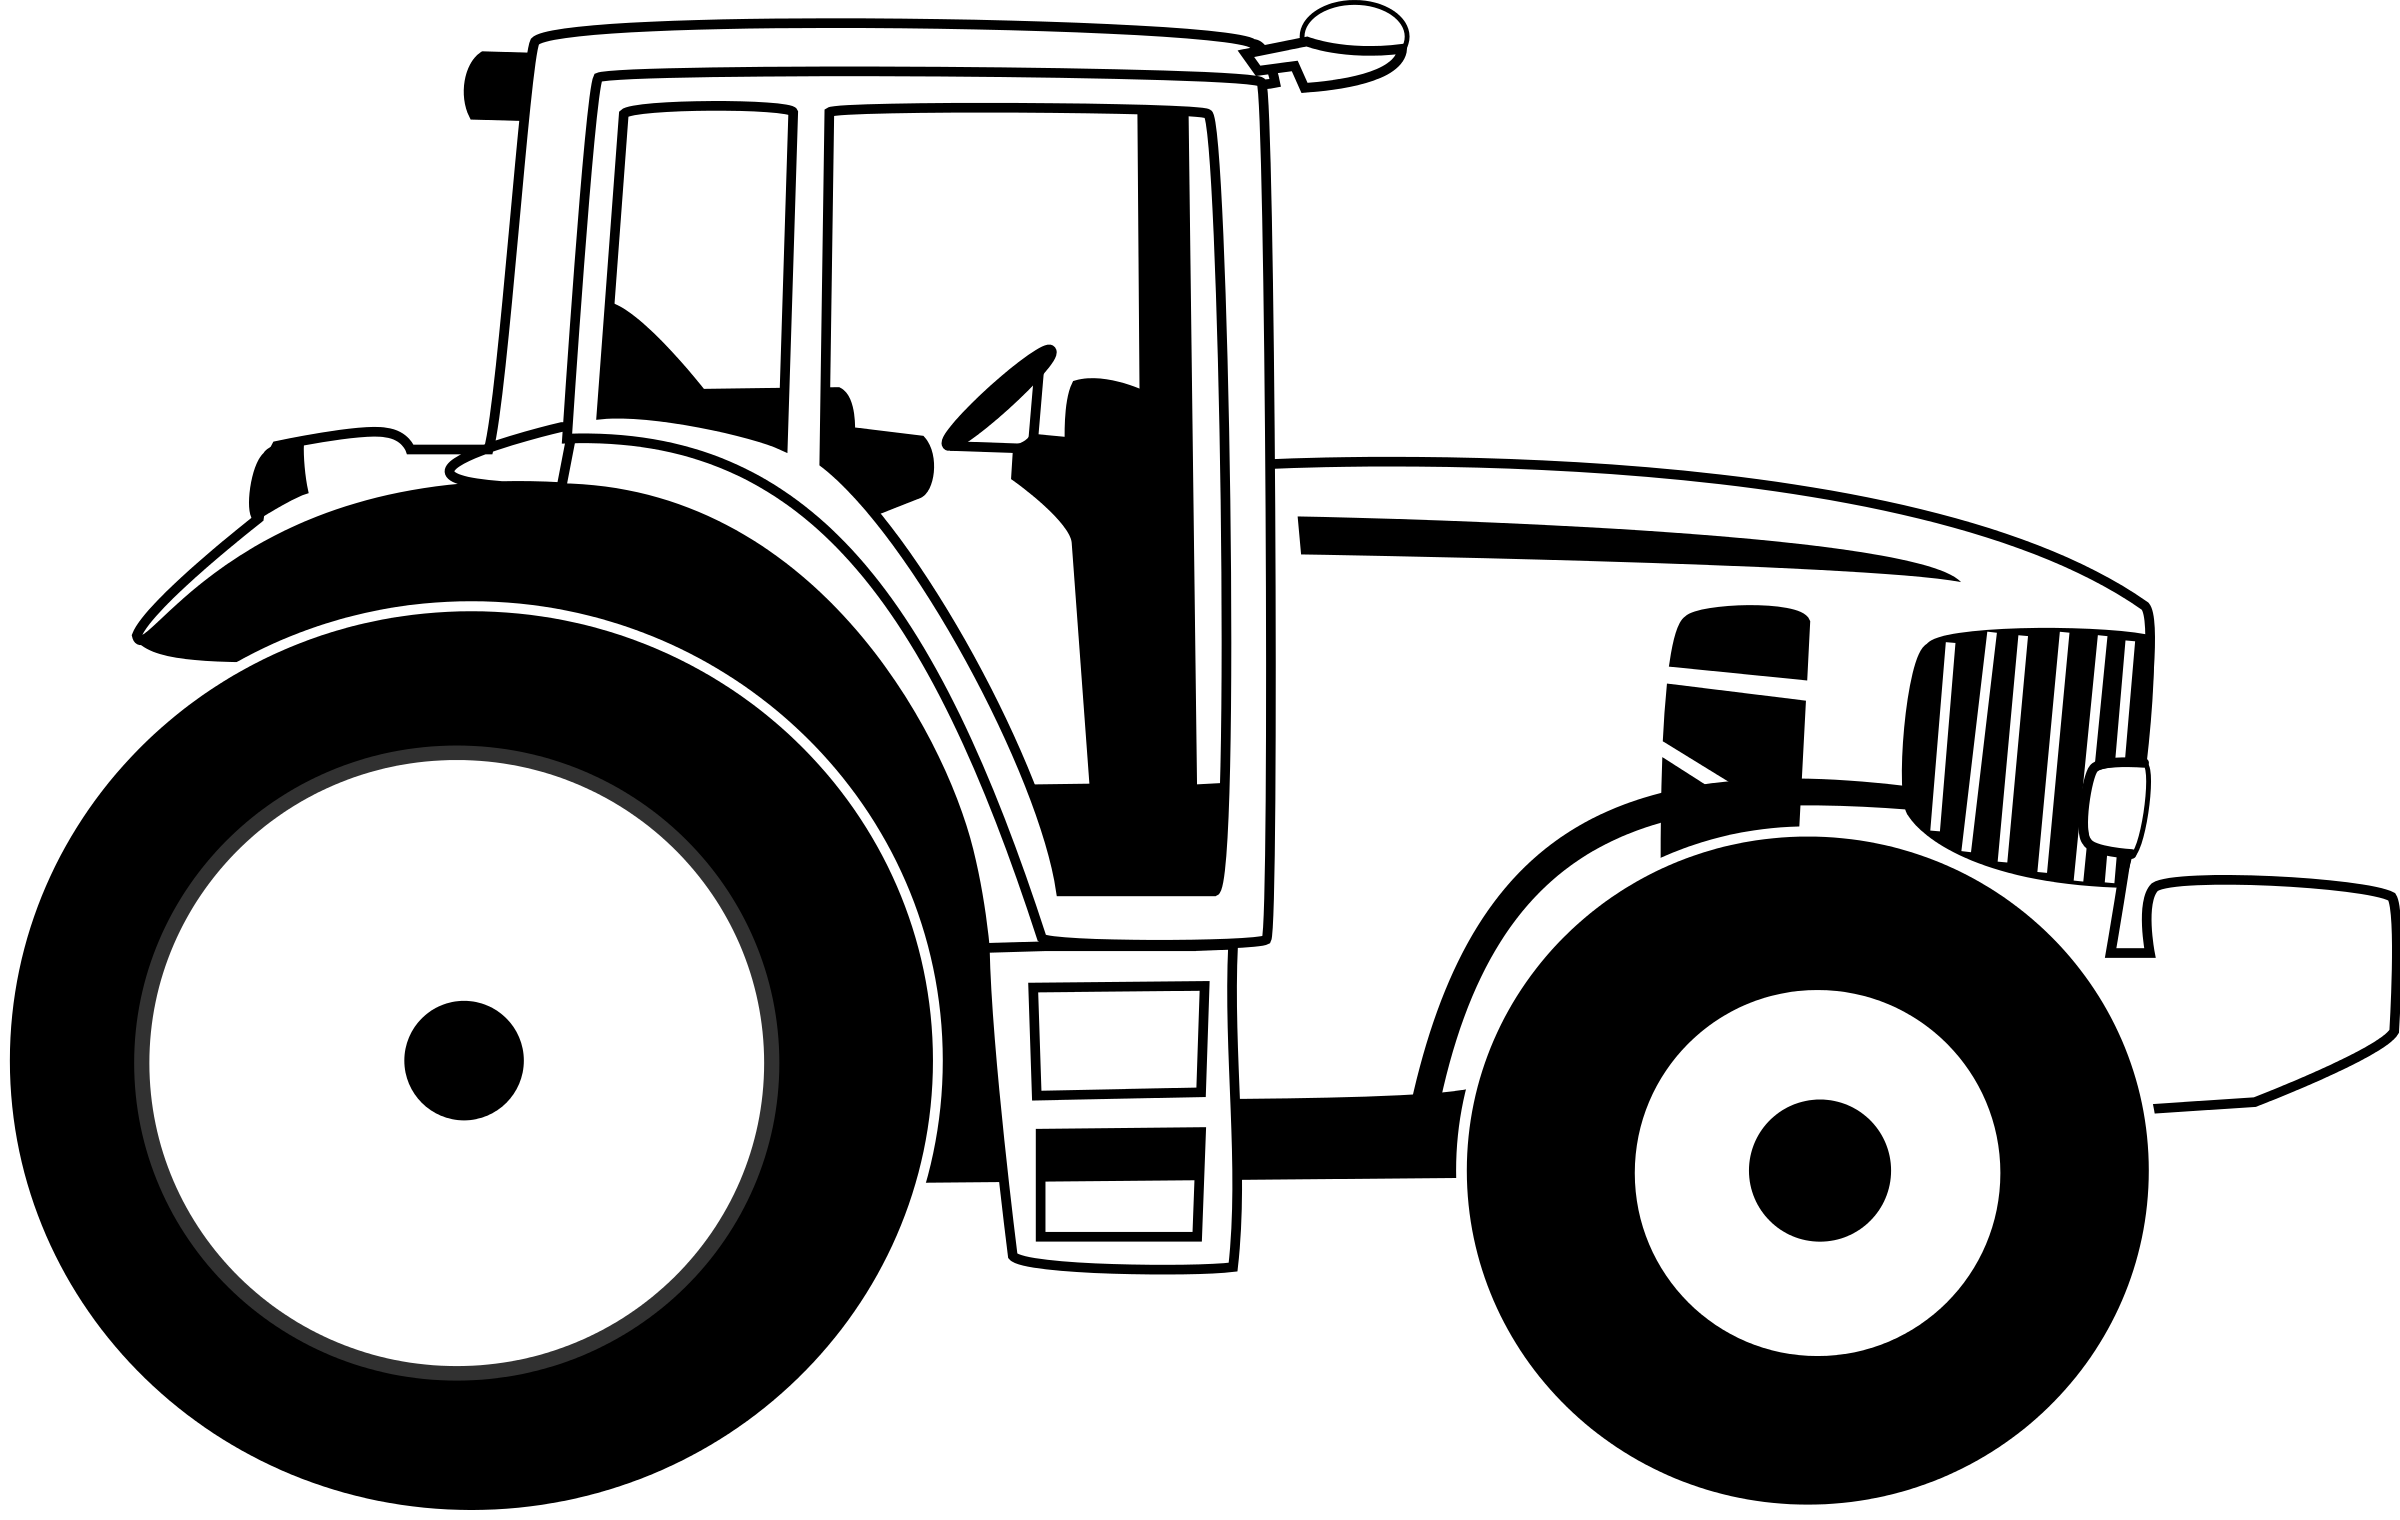 Clipart tractorr black and white Free Tractors Cliparts, Download Free Clip Art, Free Clip Art on ... black and white